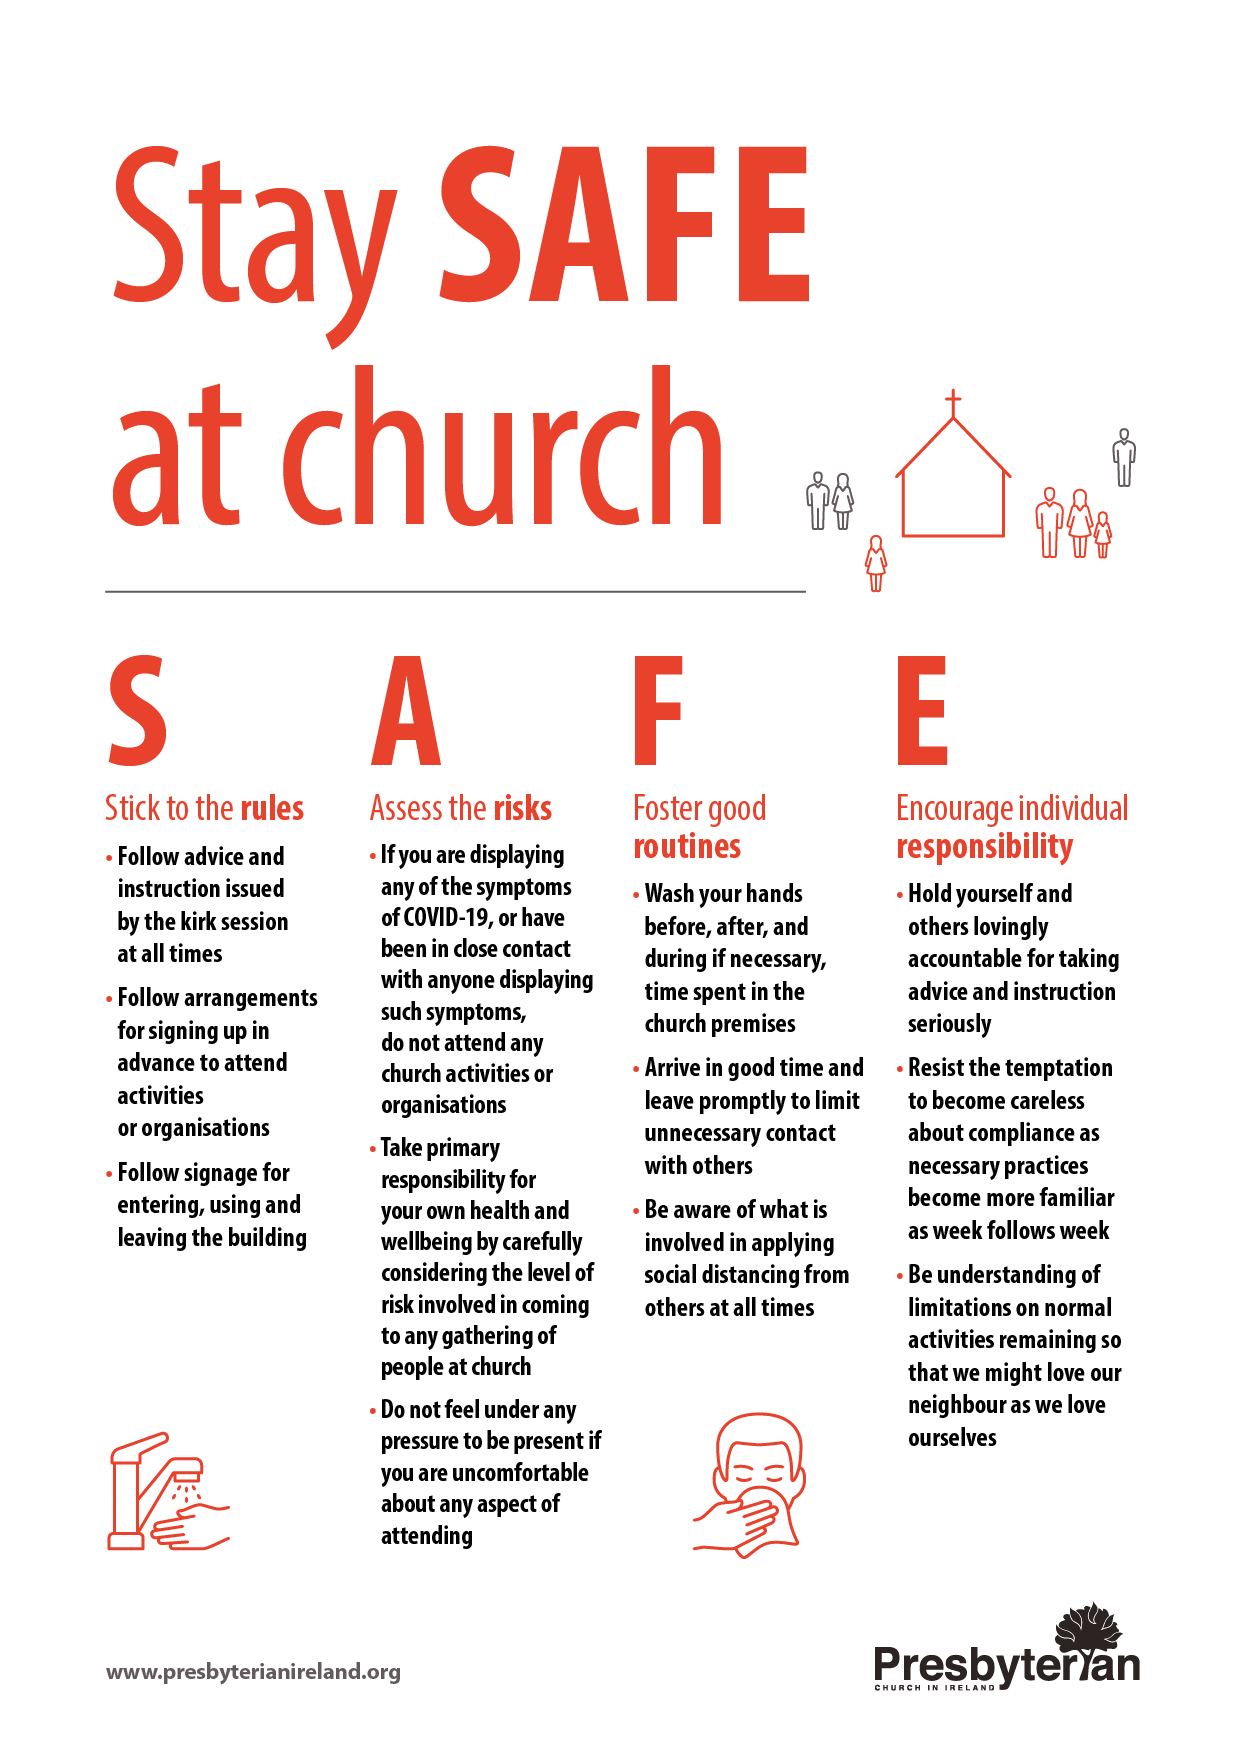 stay safe at church